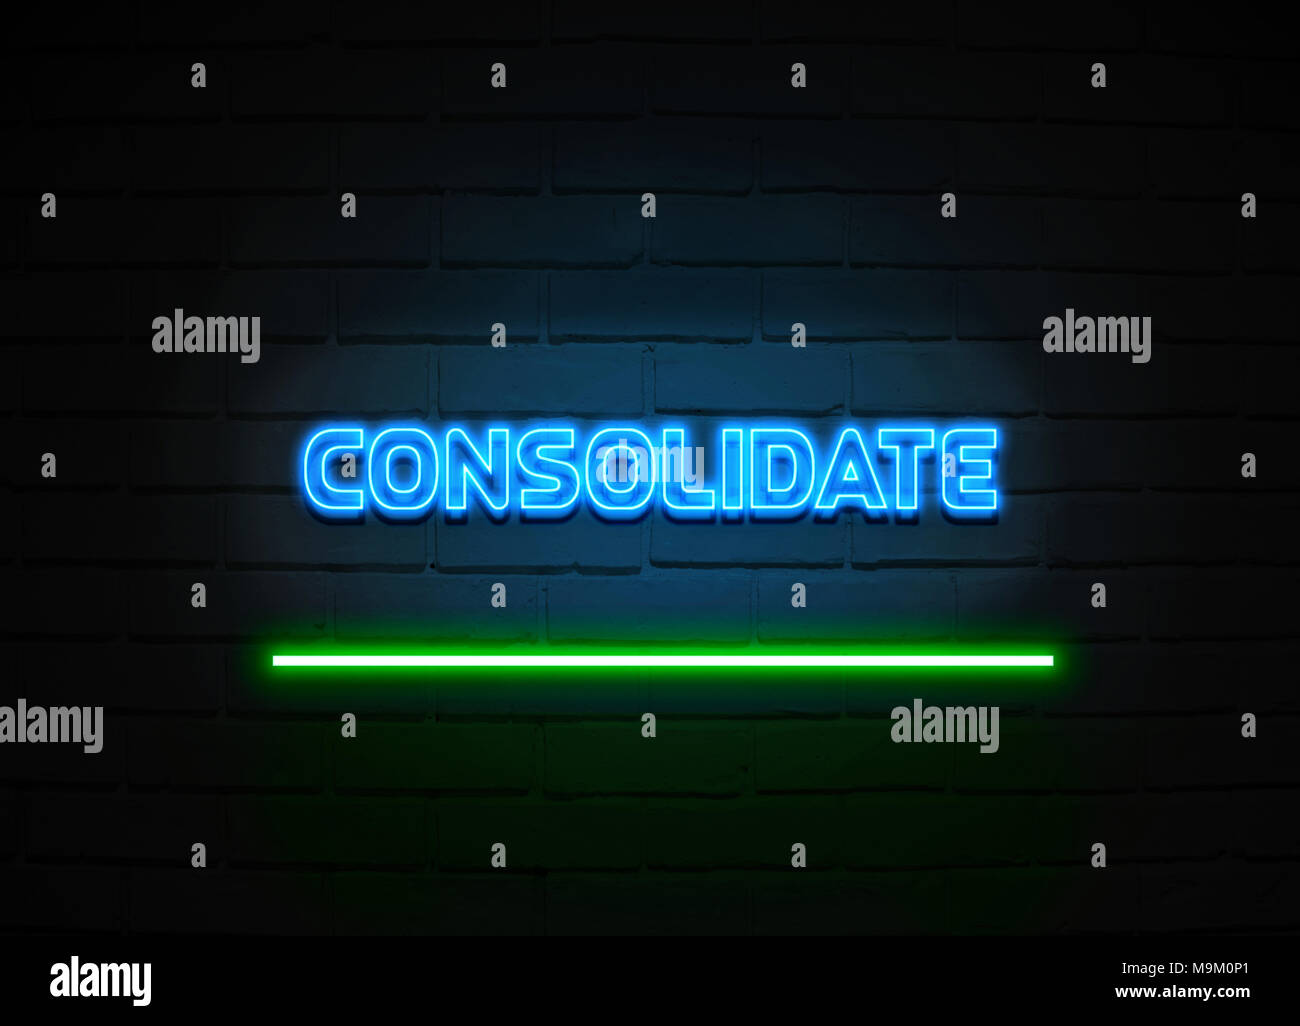 Consolidate neon sign - Glowing Neon Sign on brickwall wall - 3D rendered royalty free stock illustration. - Stock Image